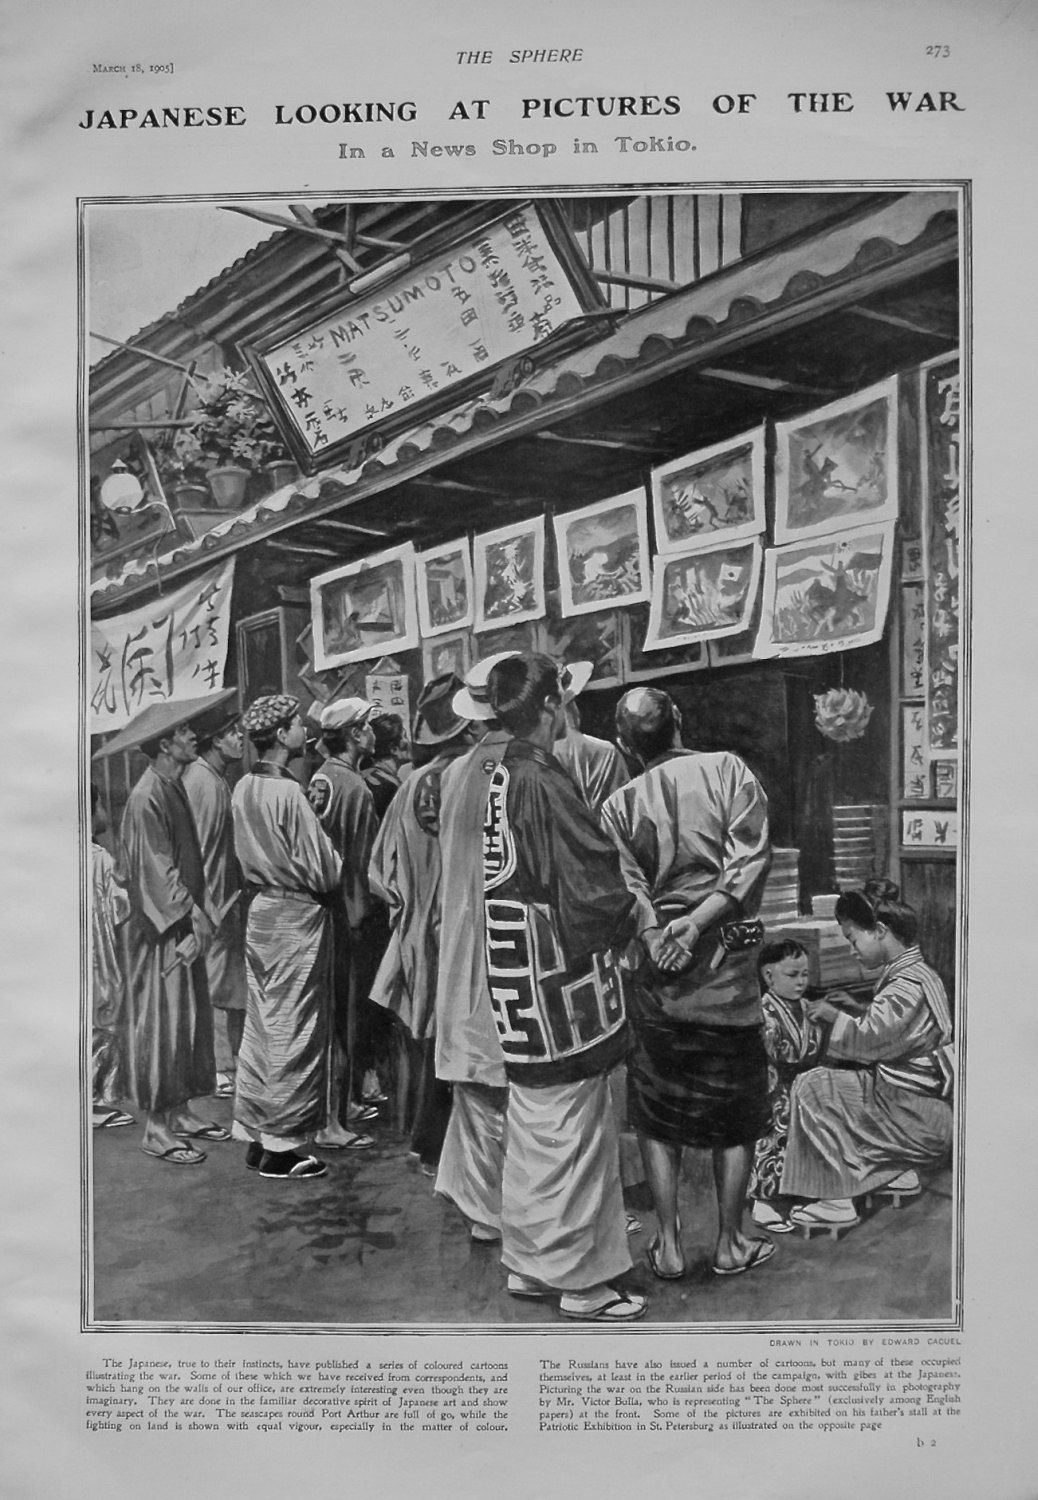 Japanese looking at Pictures of the War. 1905.